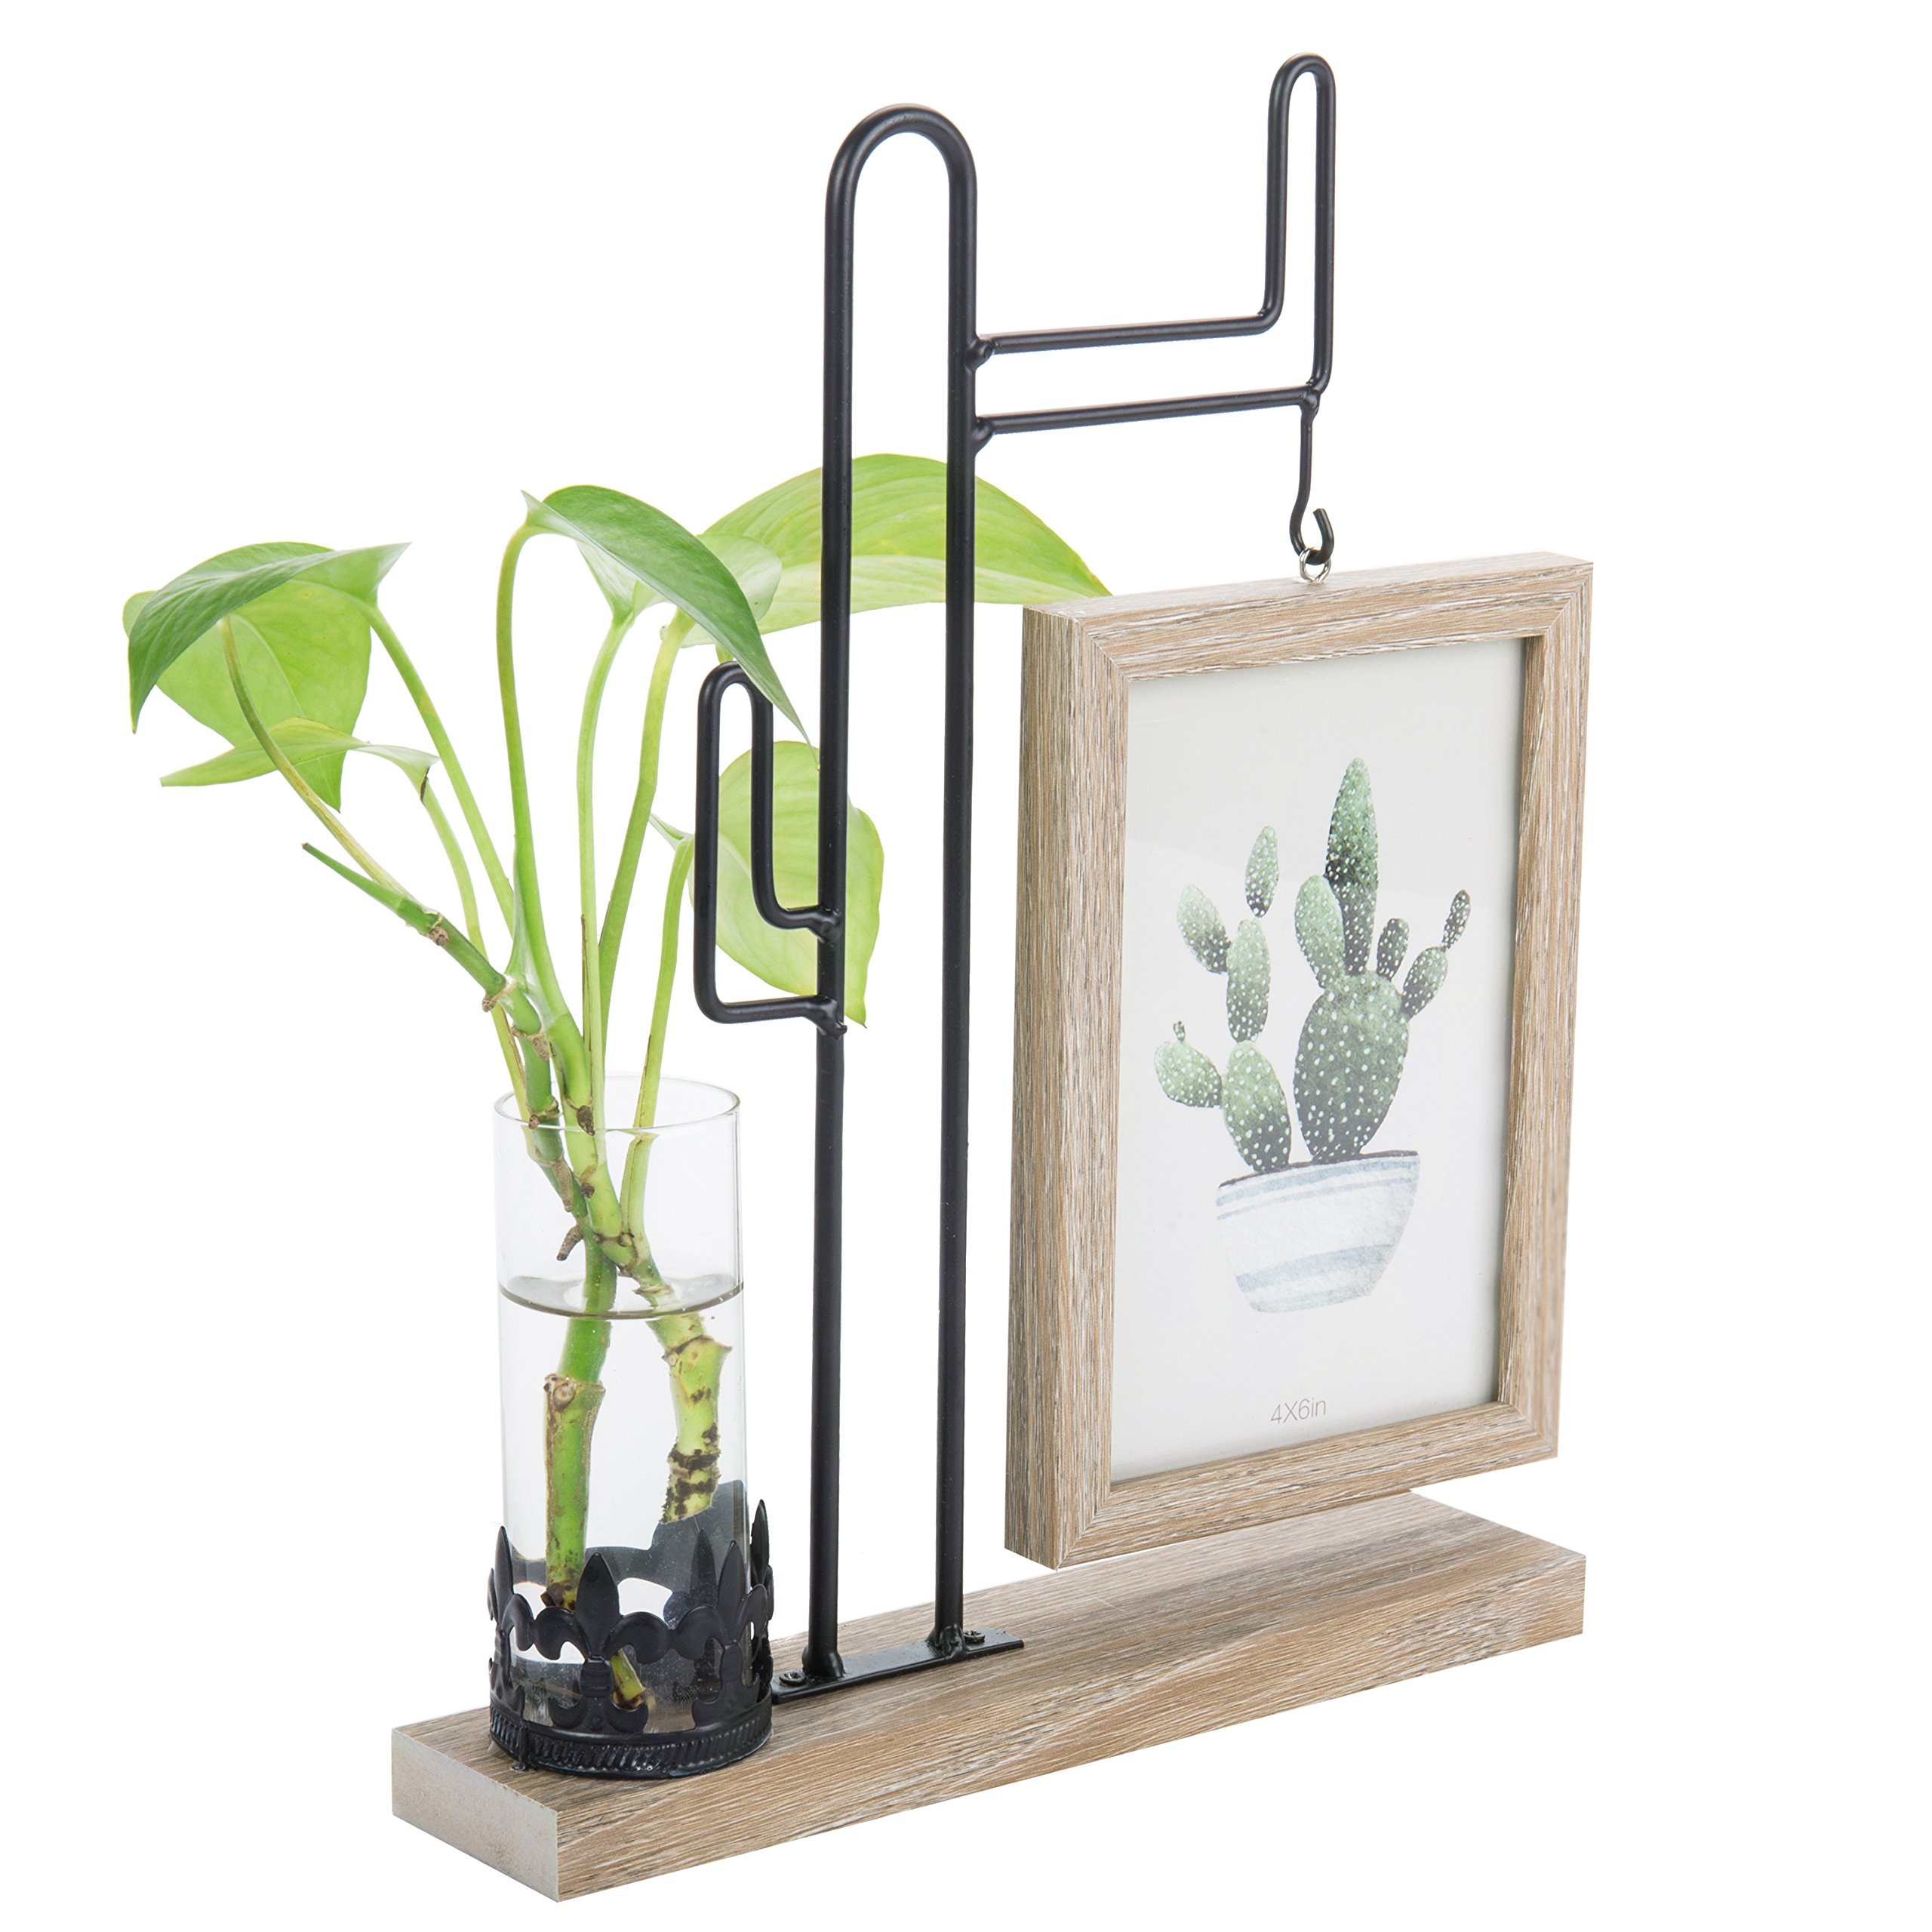 MyGift Metal Cactus Display Stand with Wood Picture Frame & Glass Vase